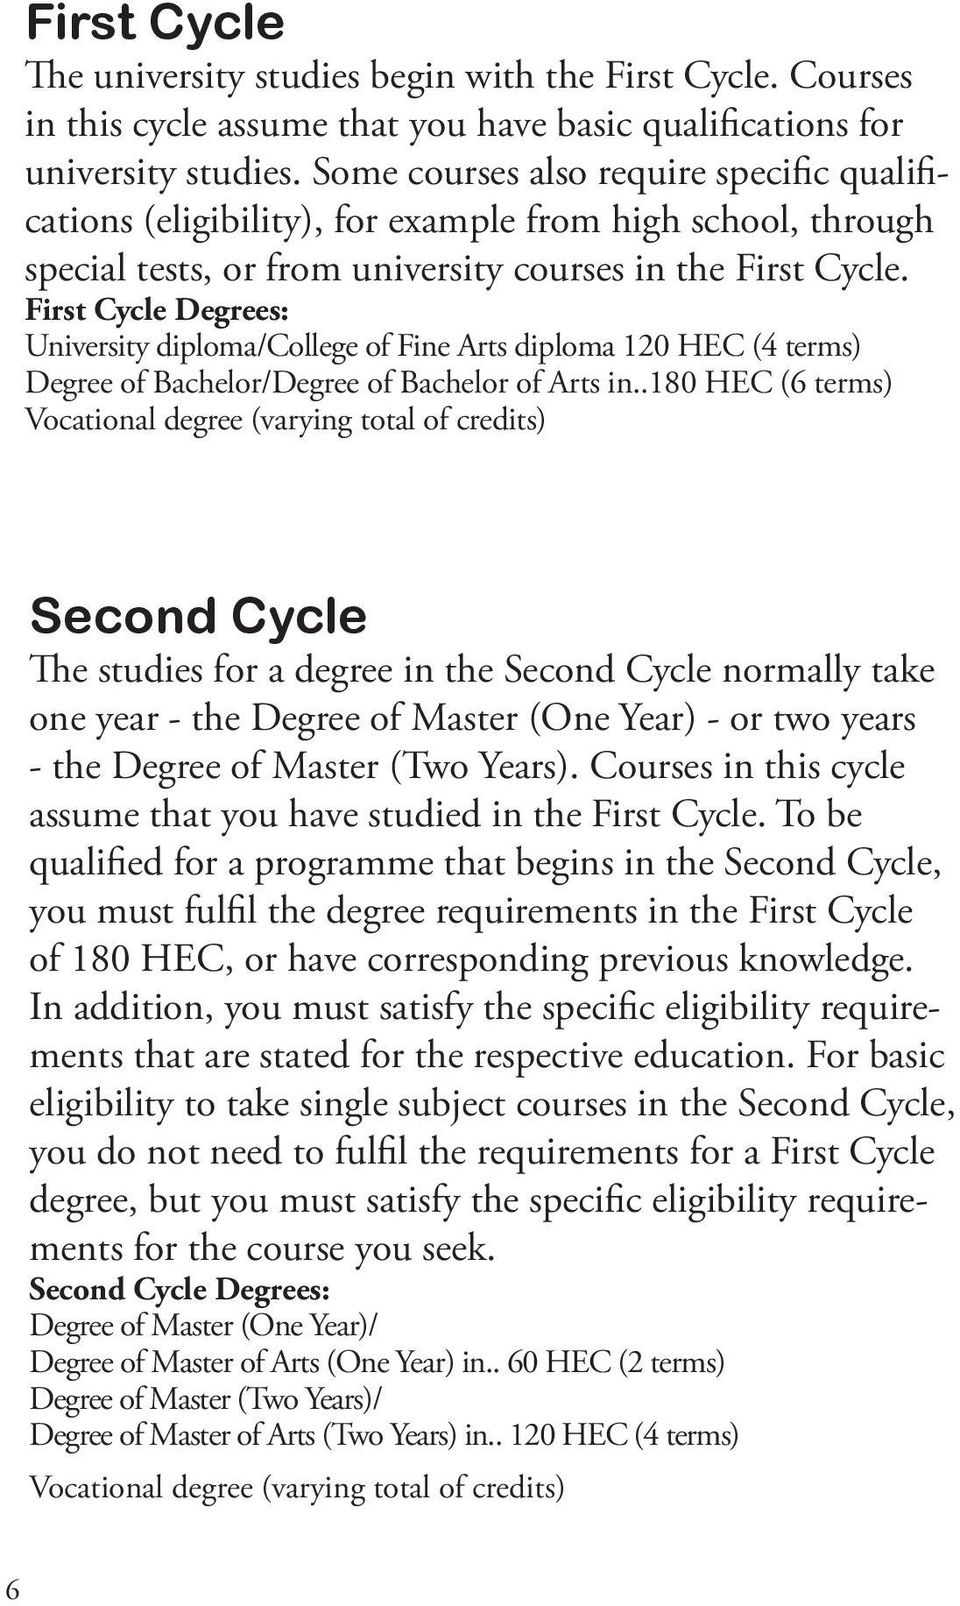 First Cycle Degrees: University diploma/college of Fine Arts diploma 120 HEC (4 terms) Degree of Bachelor/Degree of Bachelor of Arts in.